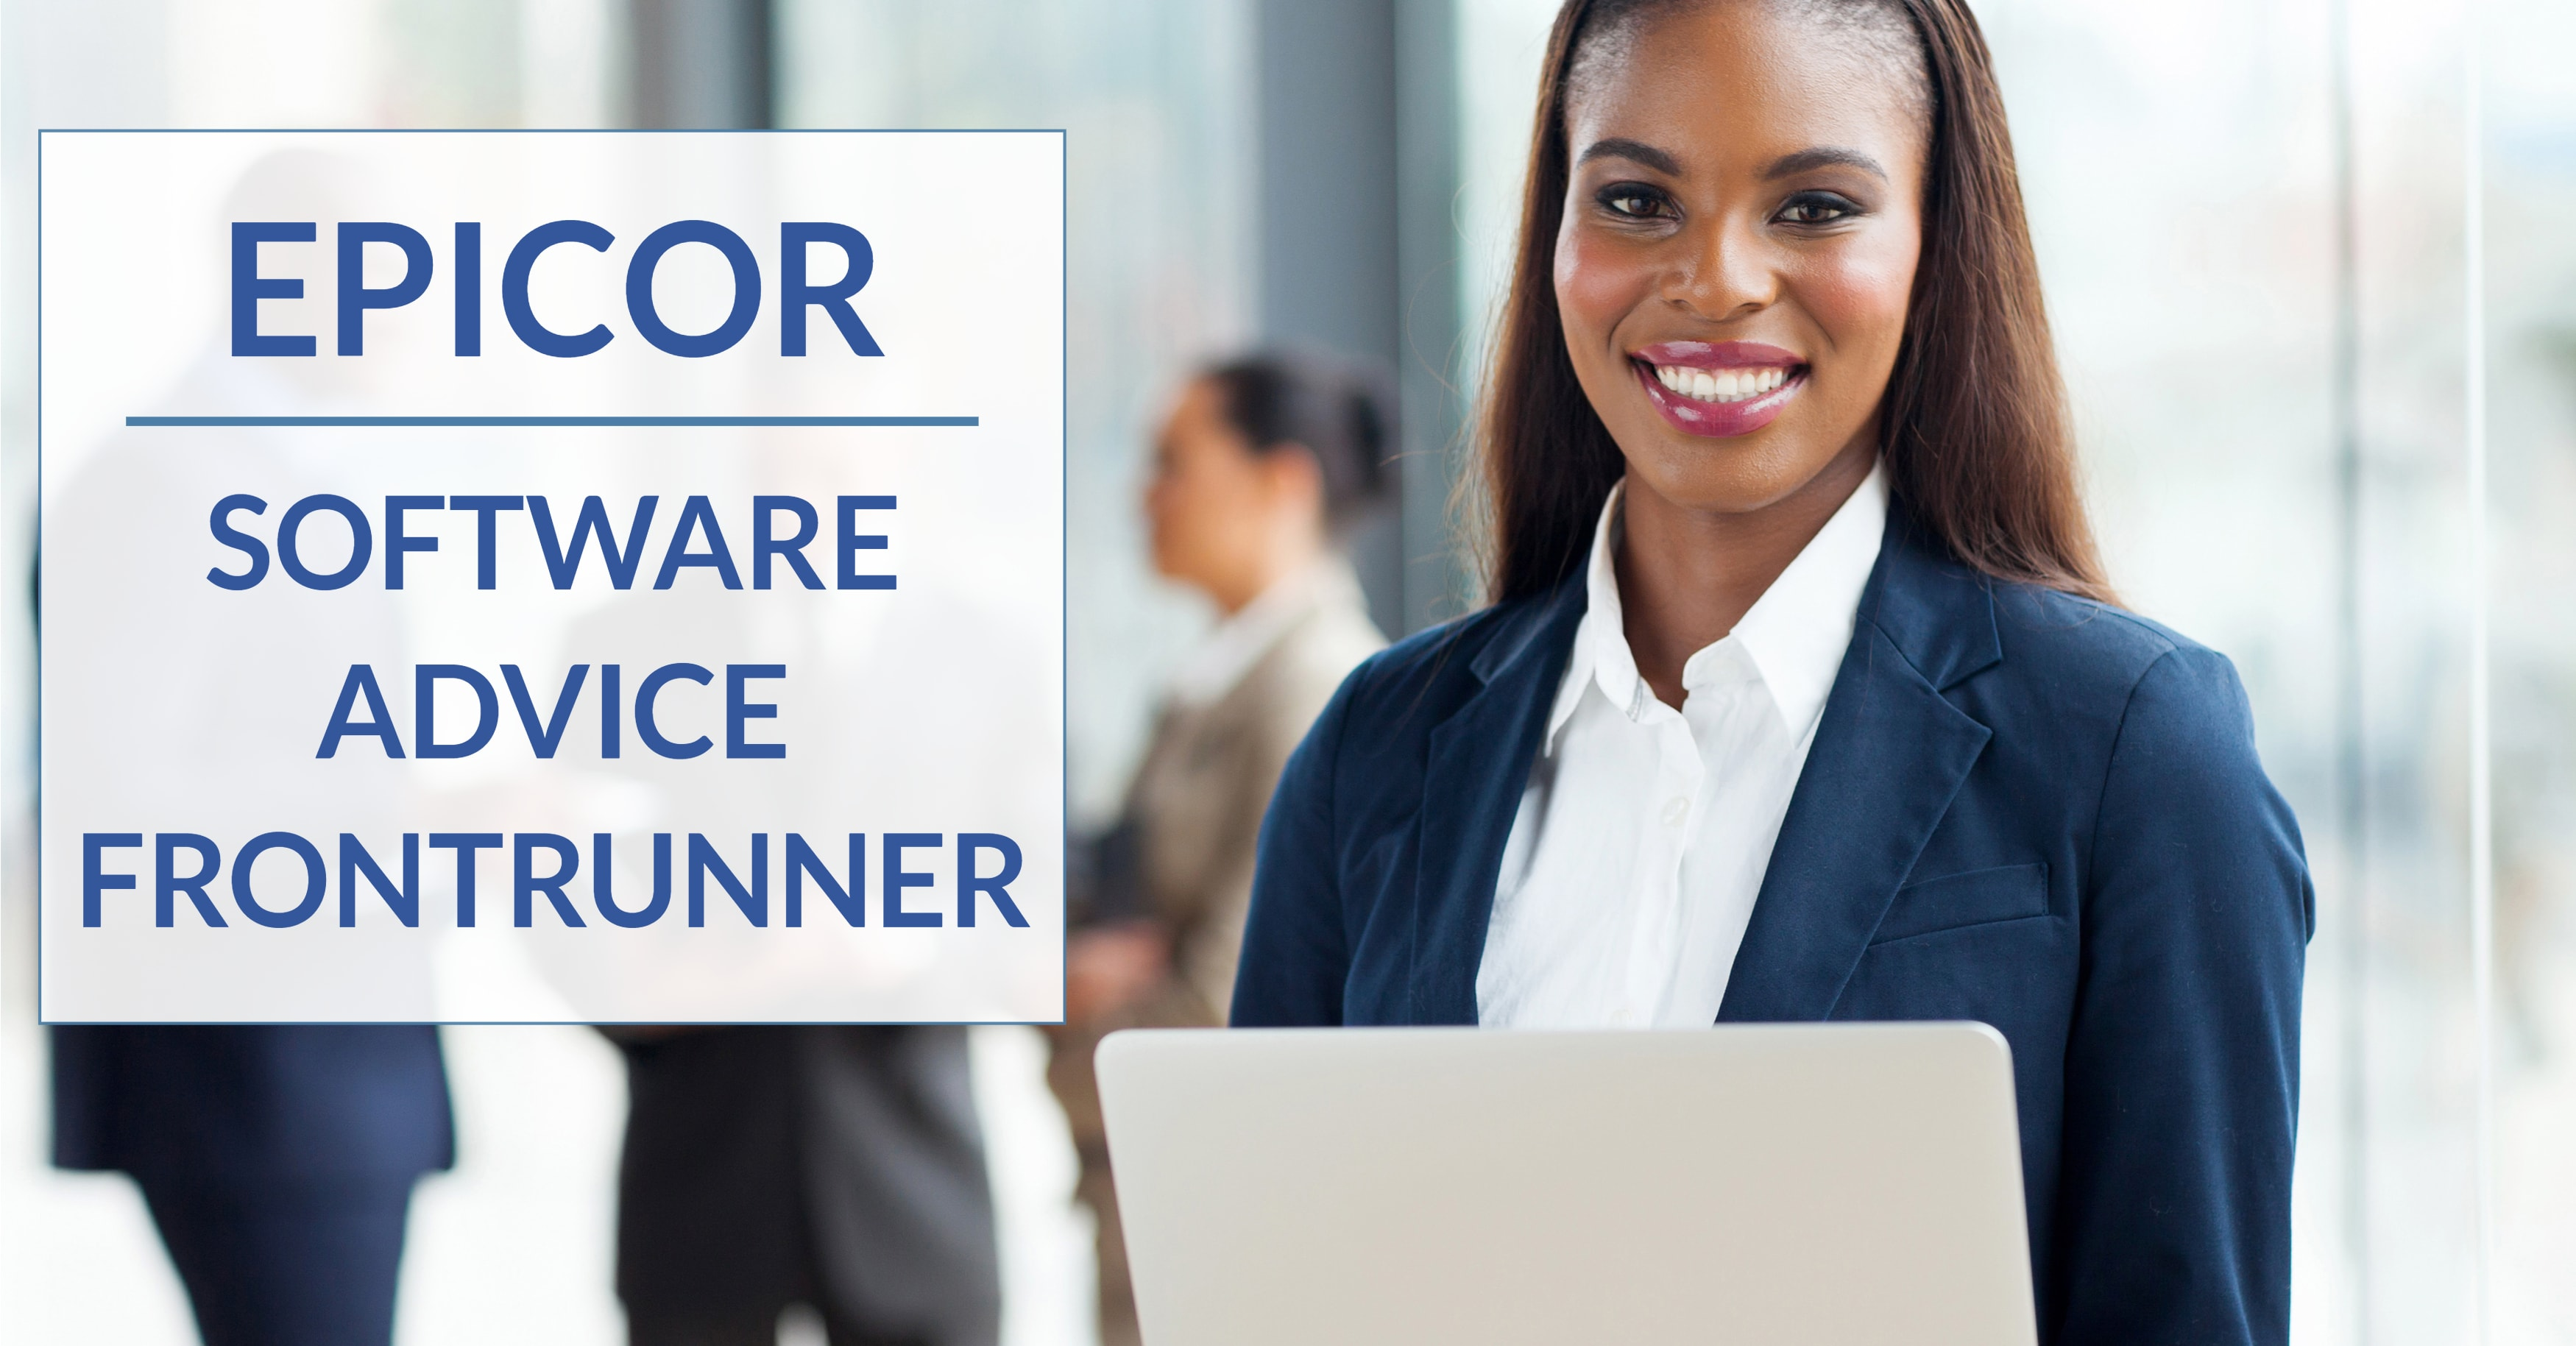 Epicor is a Software Advice FrontRunner for ERP Software